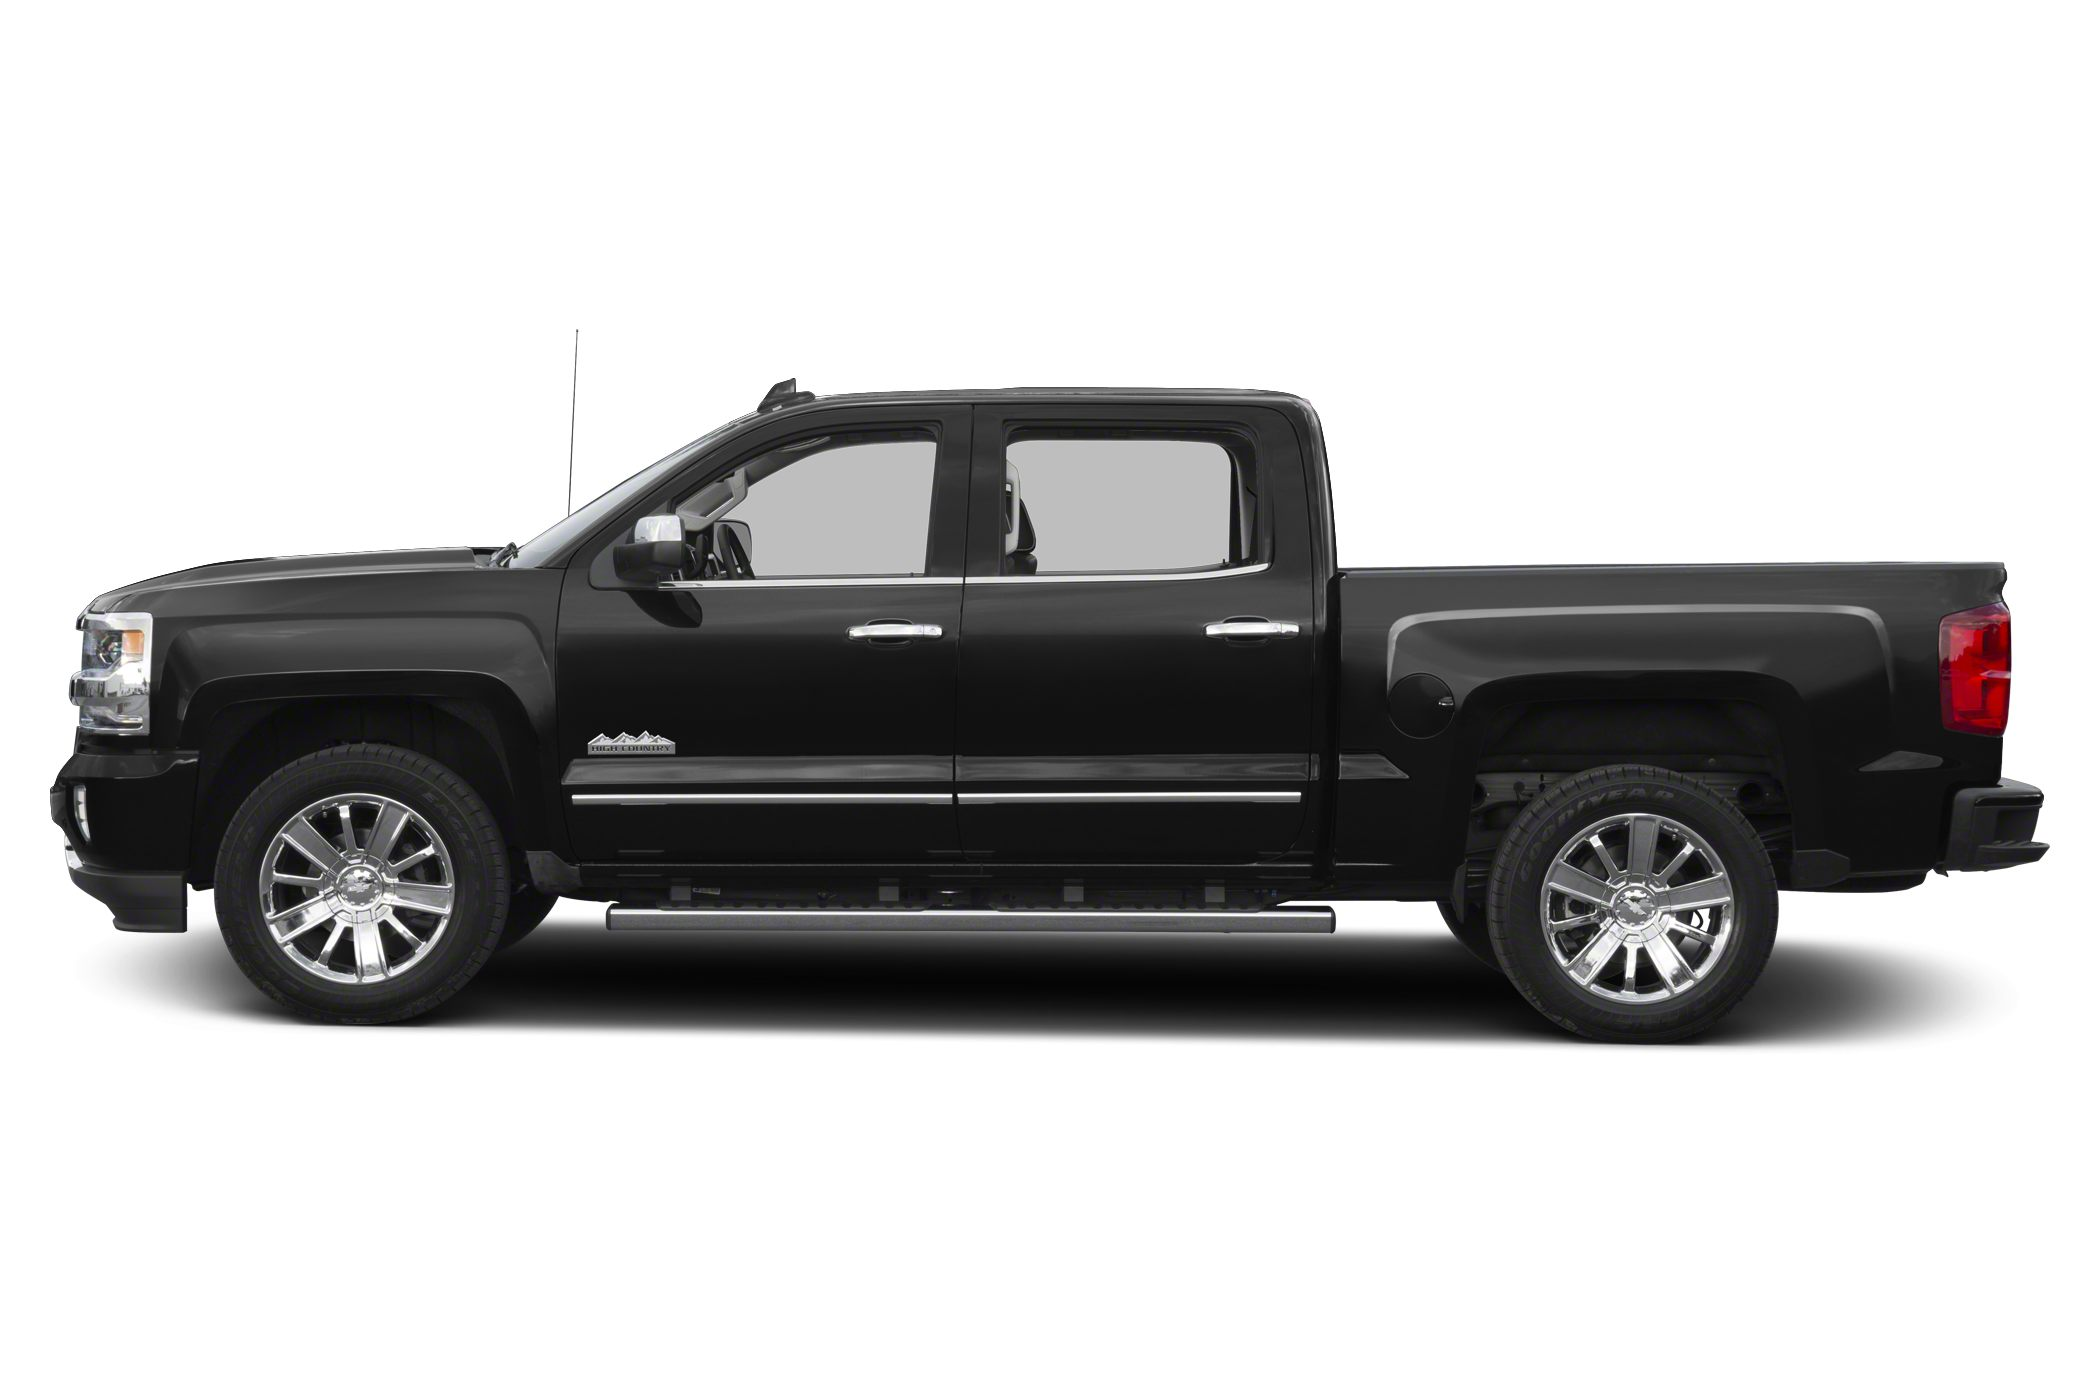 2017 chevrolet silverado 1500 high country cars and vehicles meadville pa. Black Bedroom Furniture Sets. Home Design Ideas